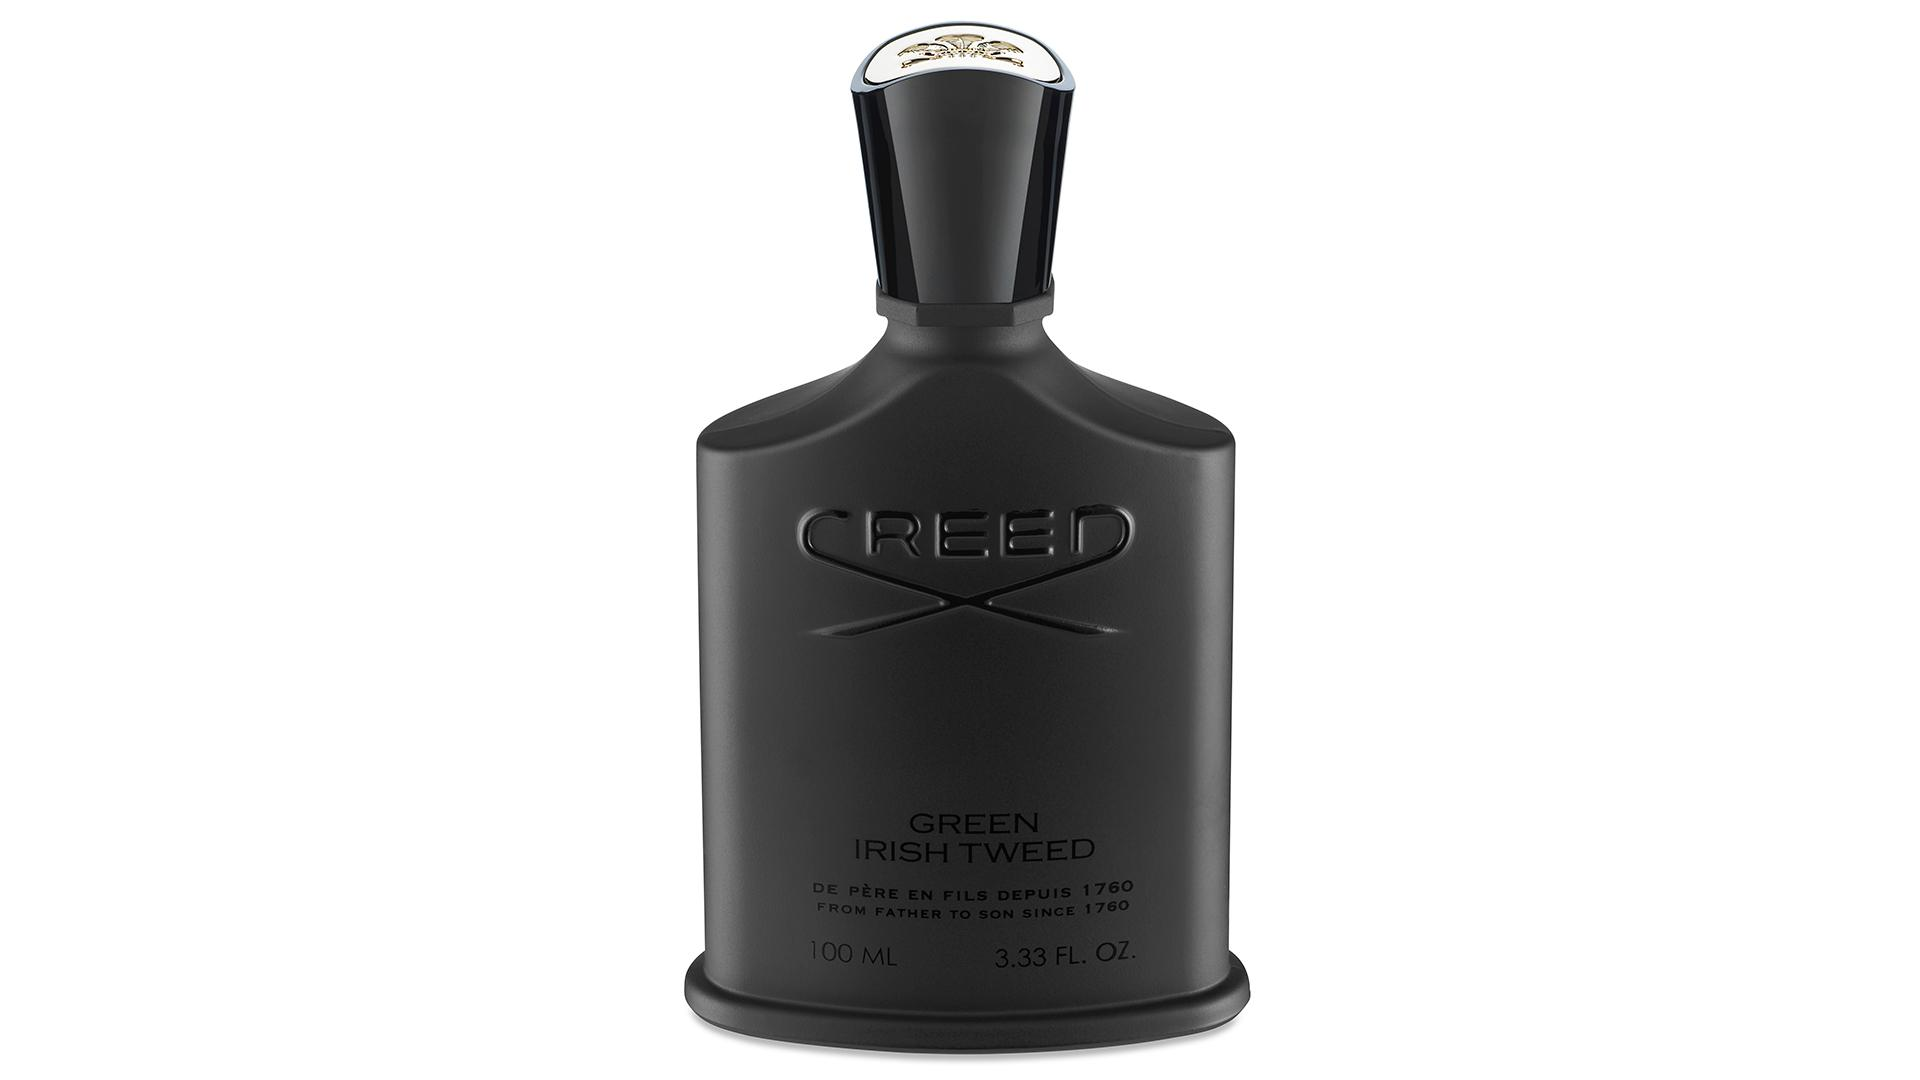 Creed Green Irish Tweed fragrance